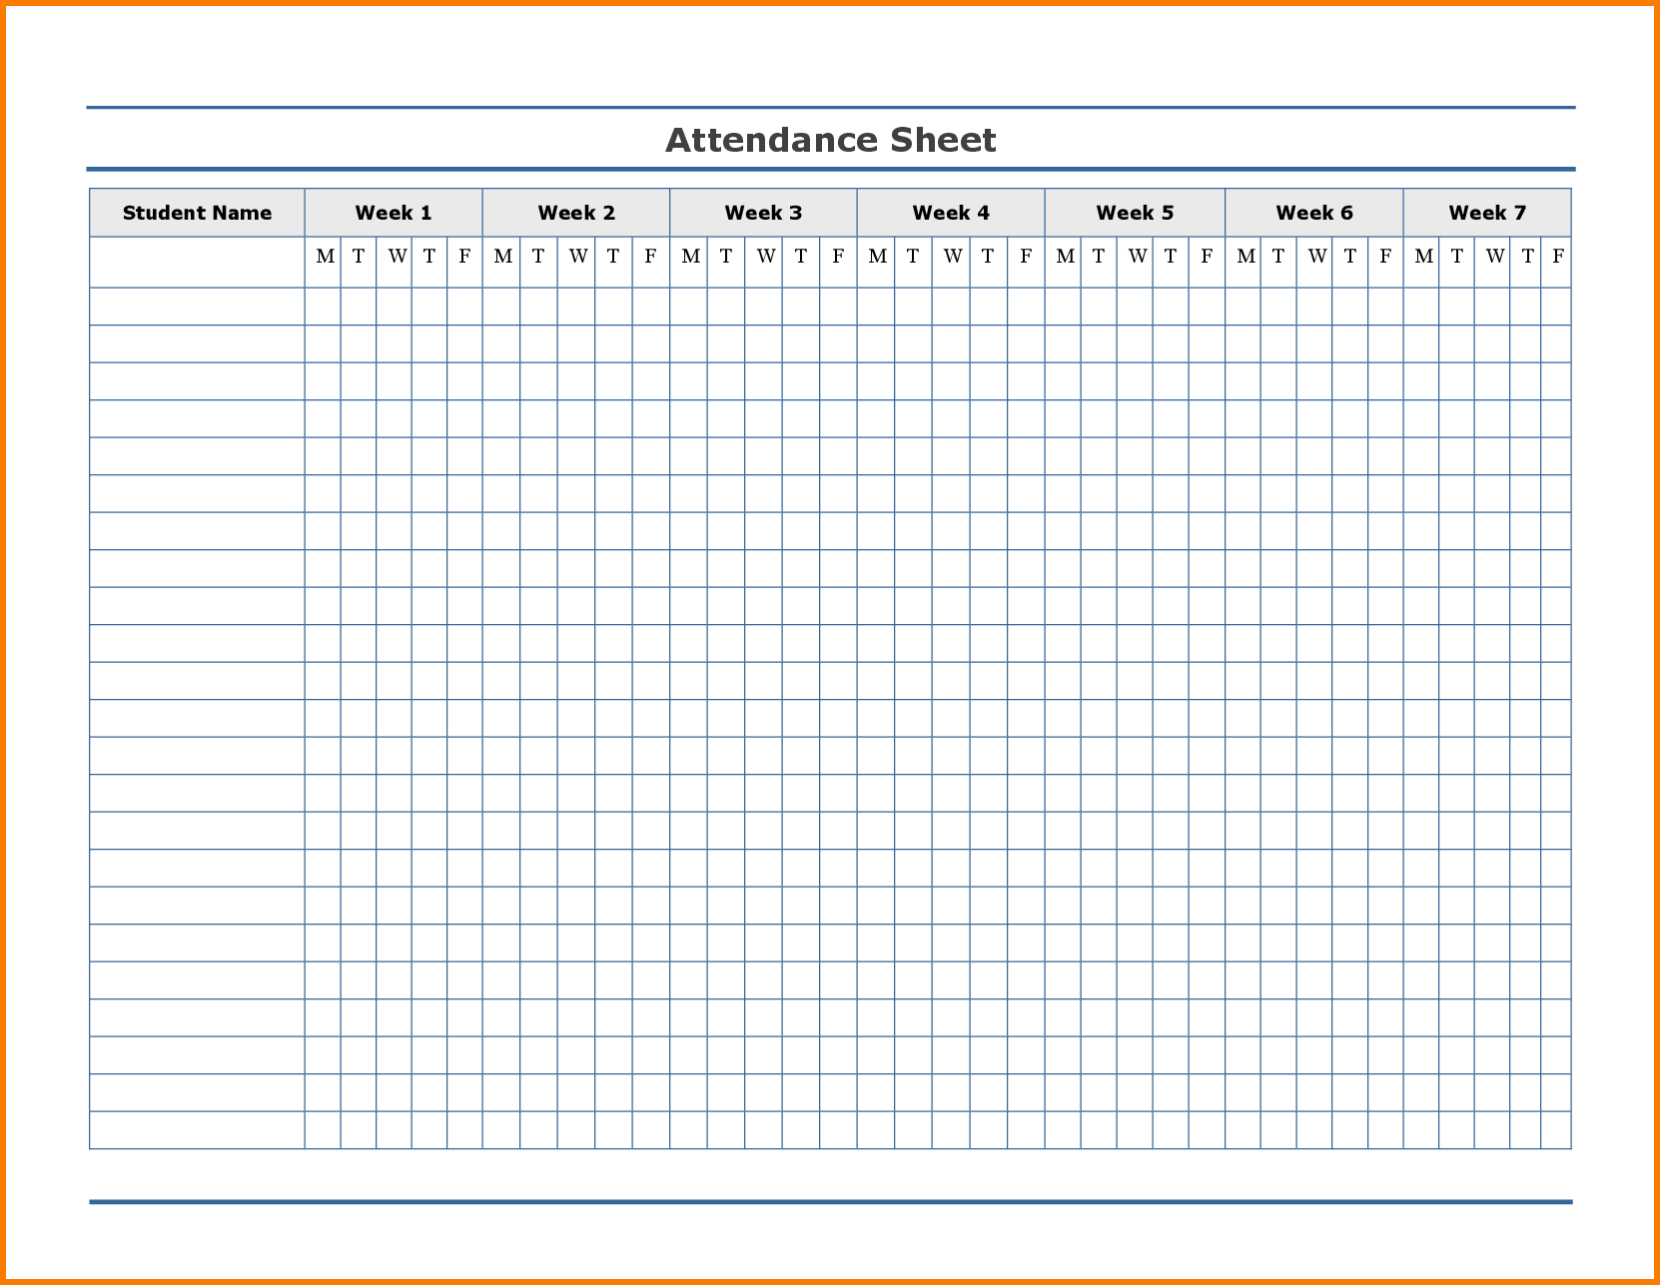 Employee Attendance Record Sheet Printable | Attendance